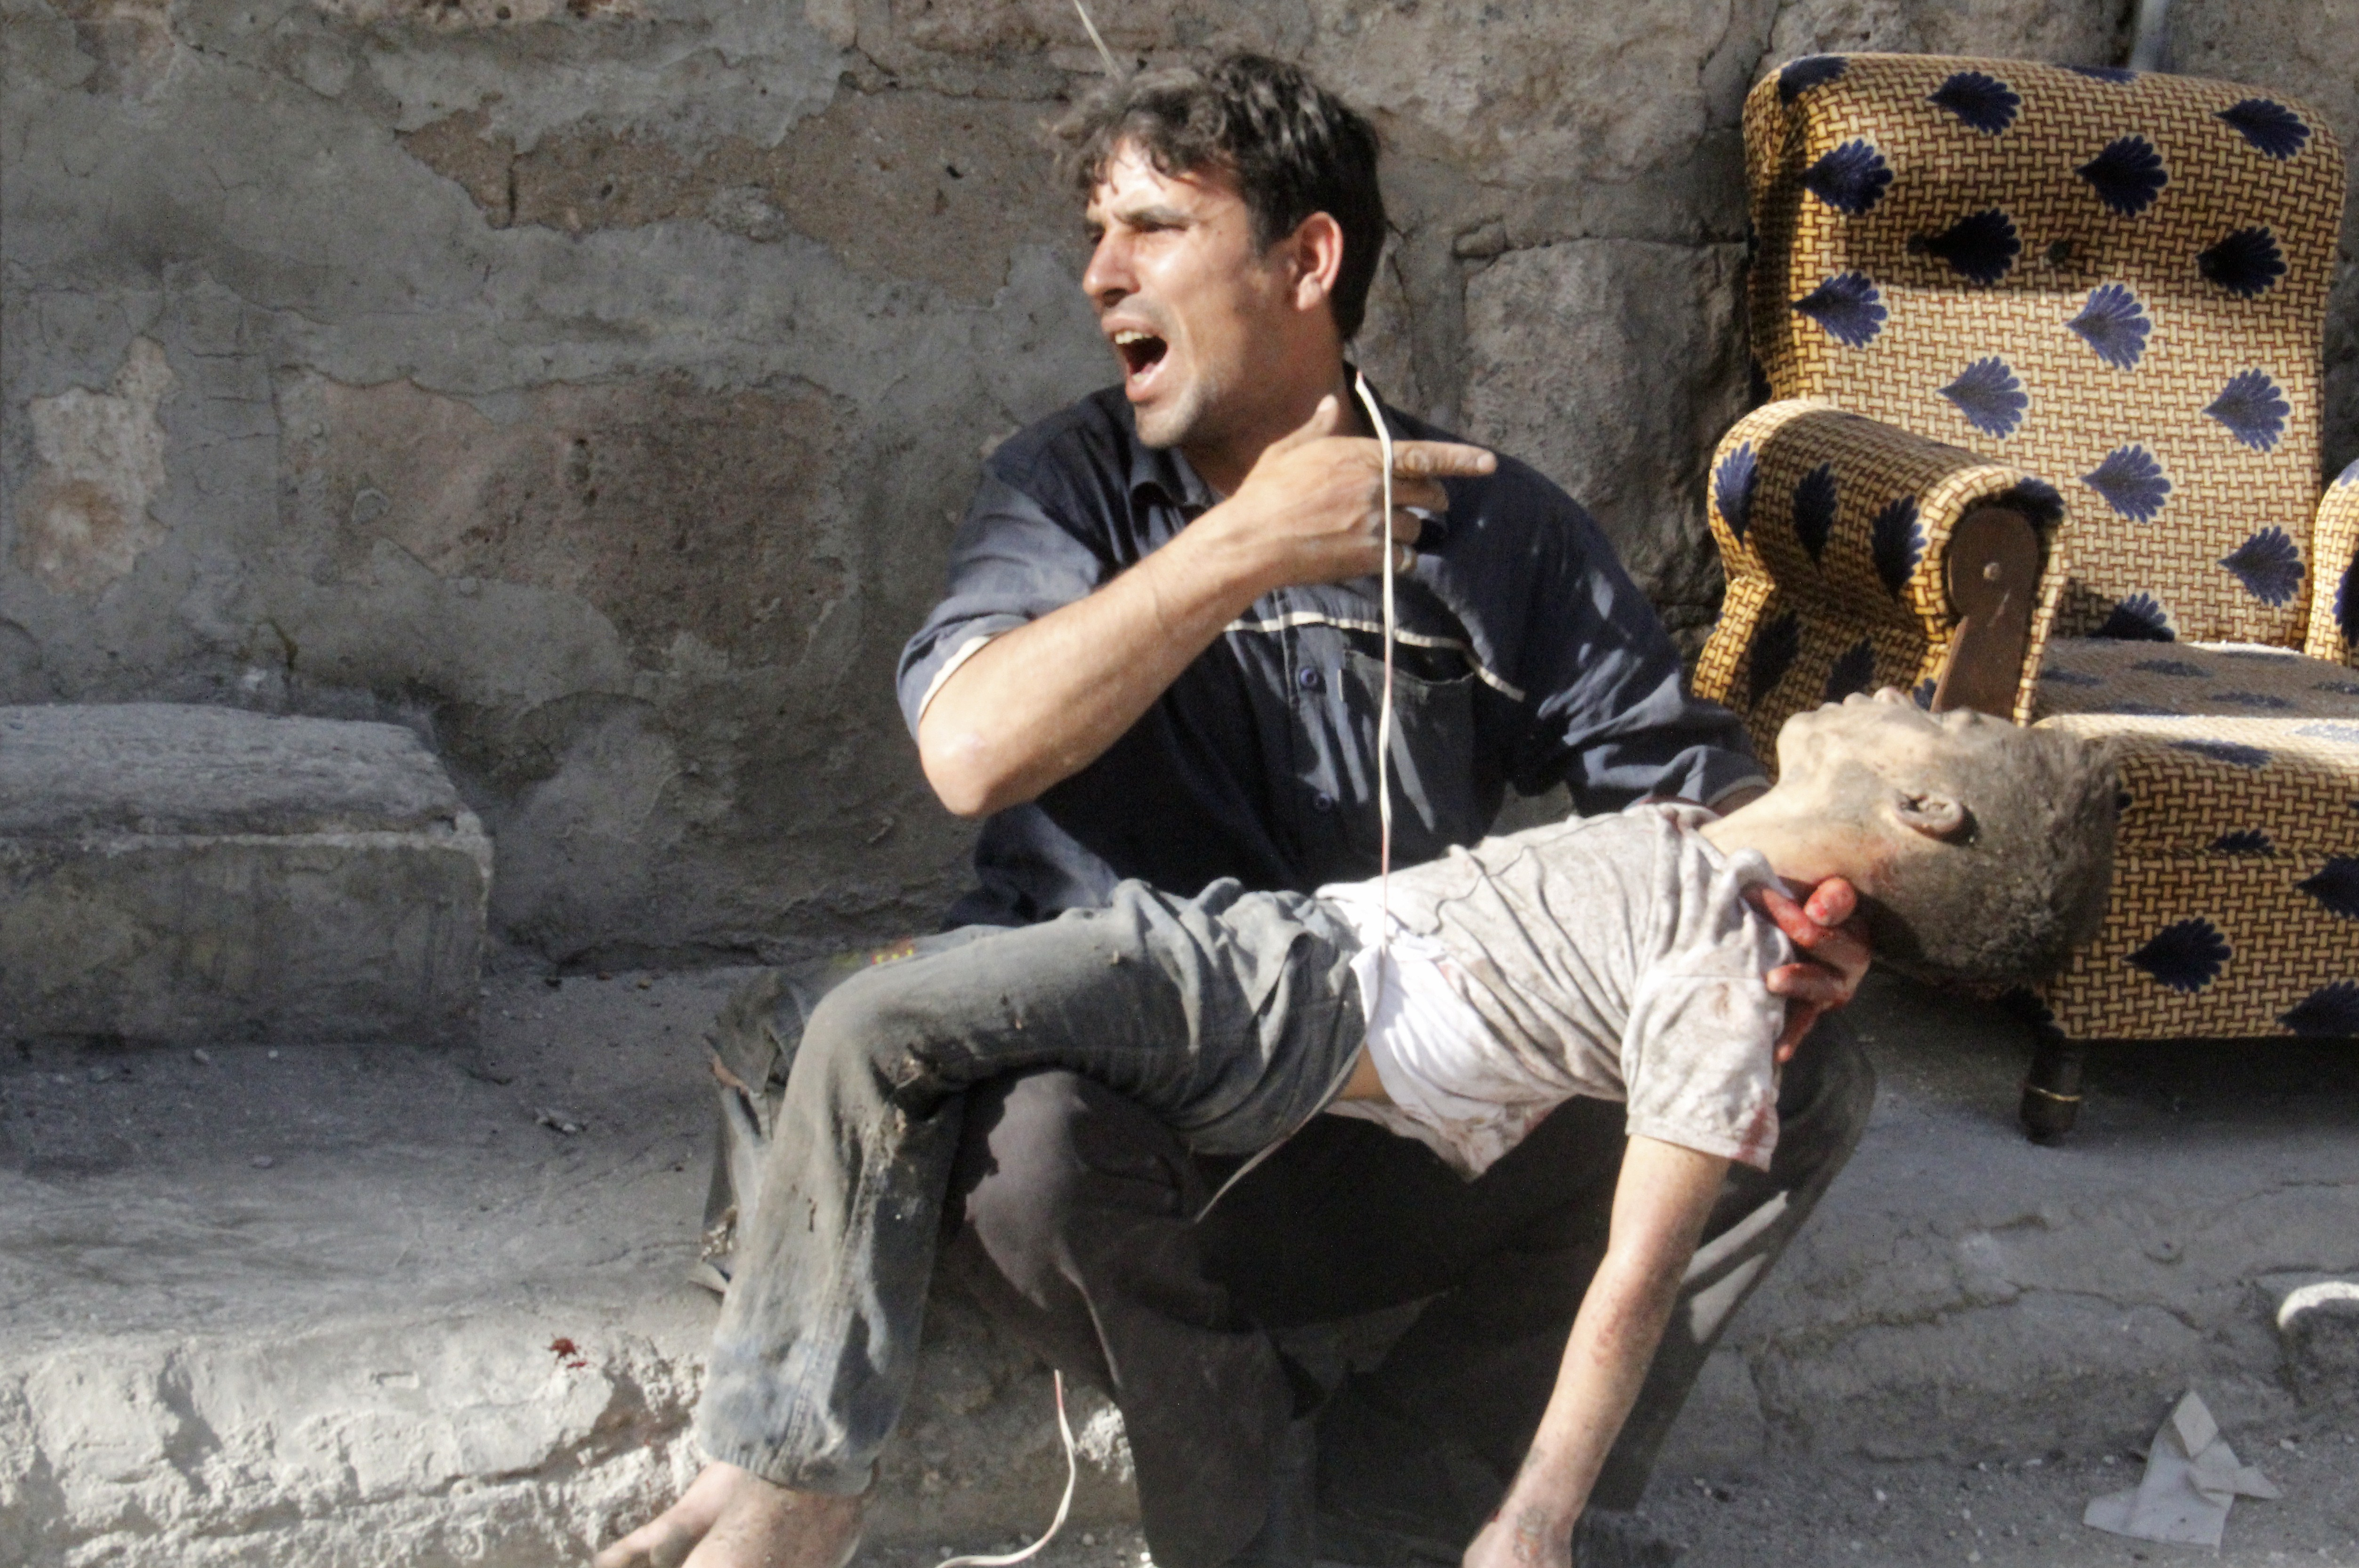 A Syrian man carries a boy's body from the site of an air strike reportedly by Bashar Assad's forces May 1 in Aleppo.